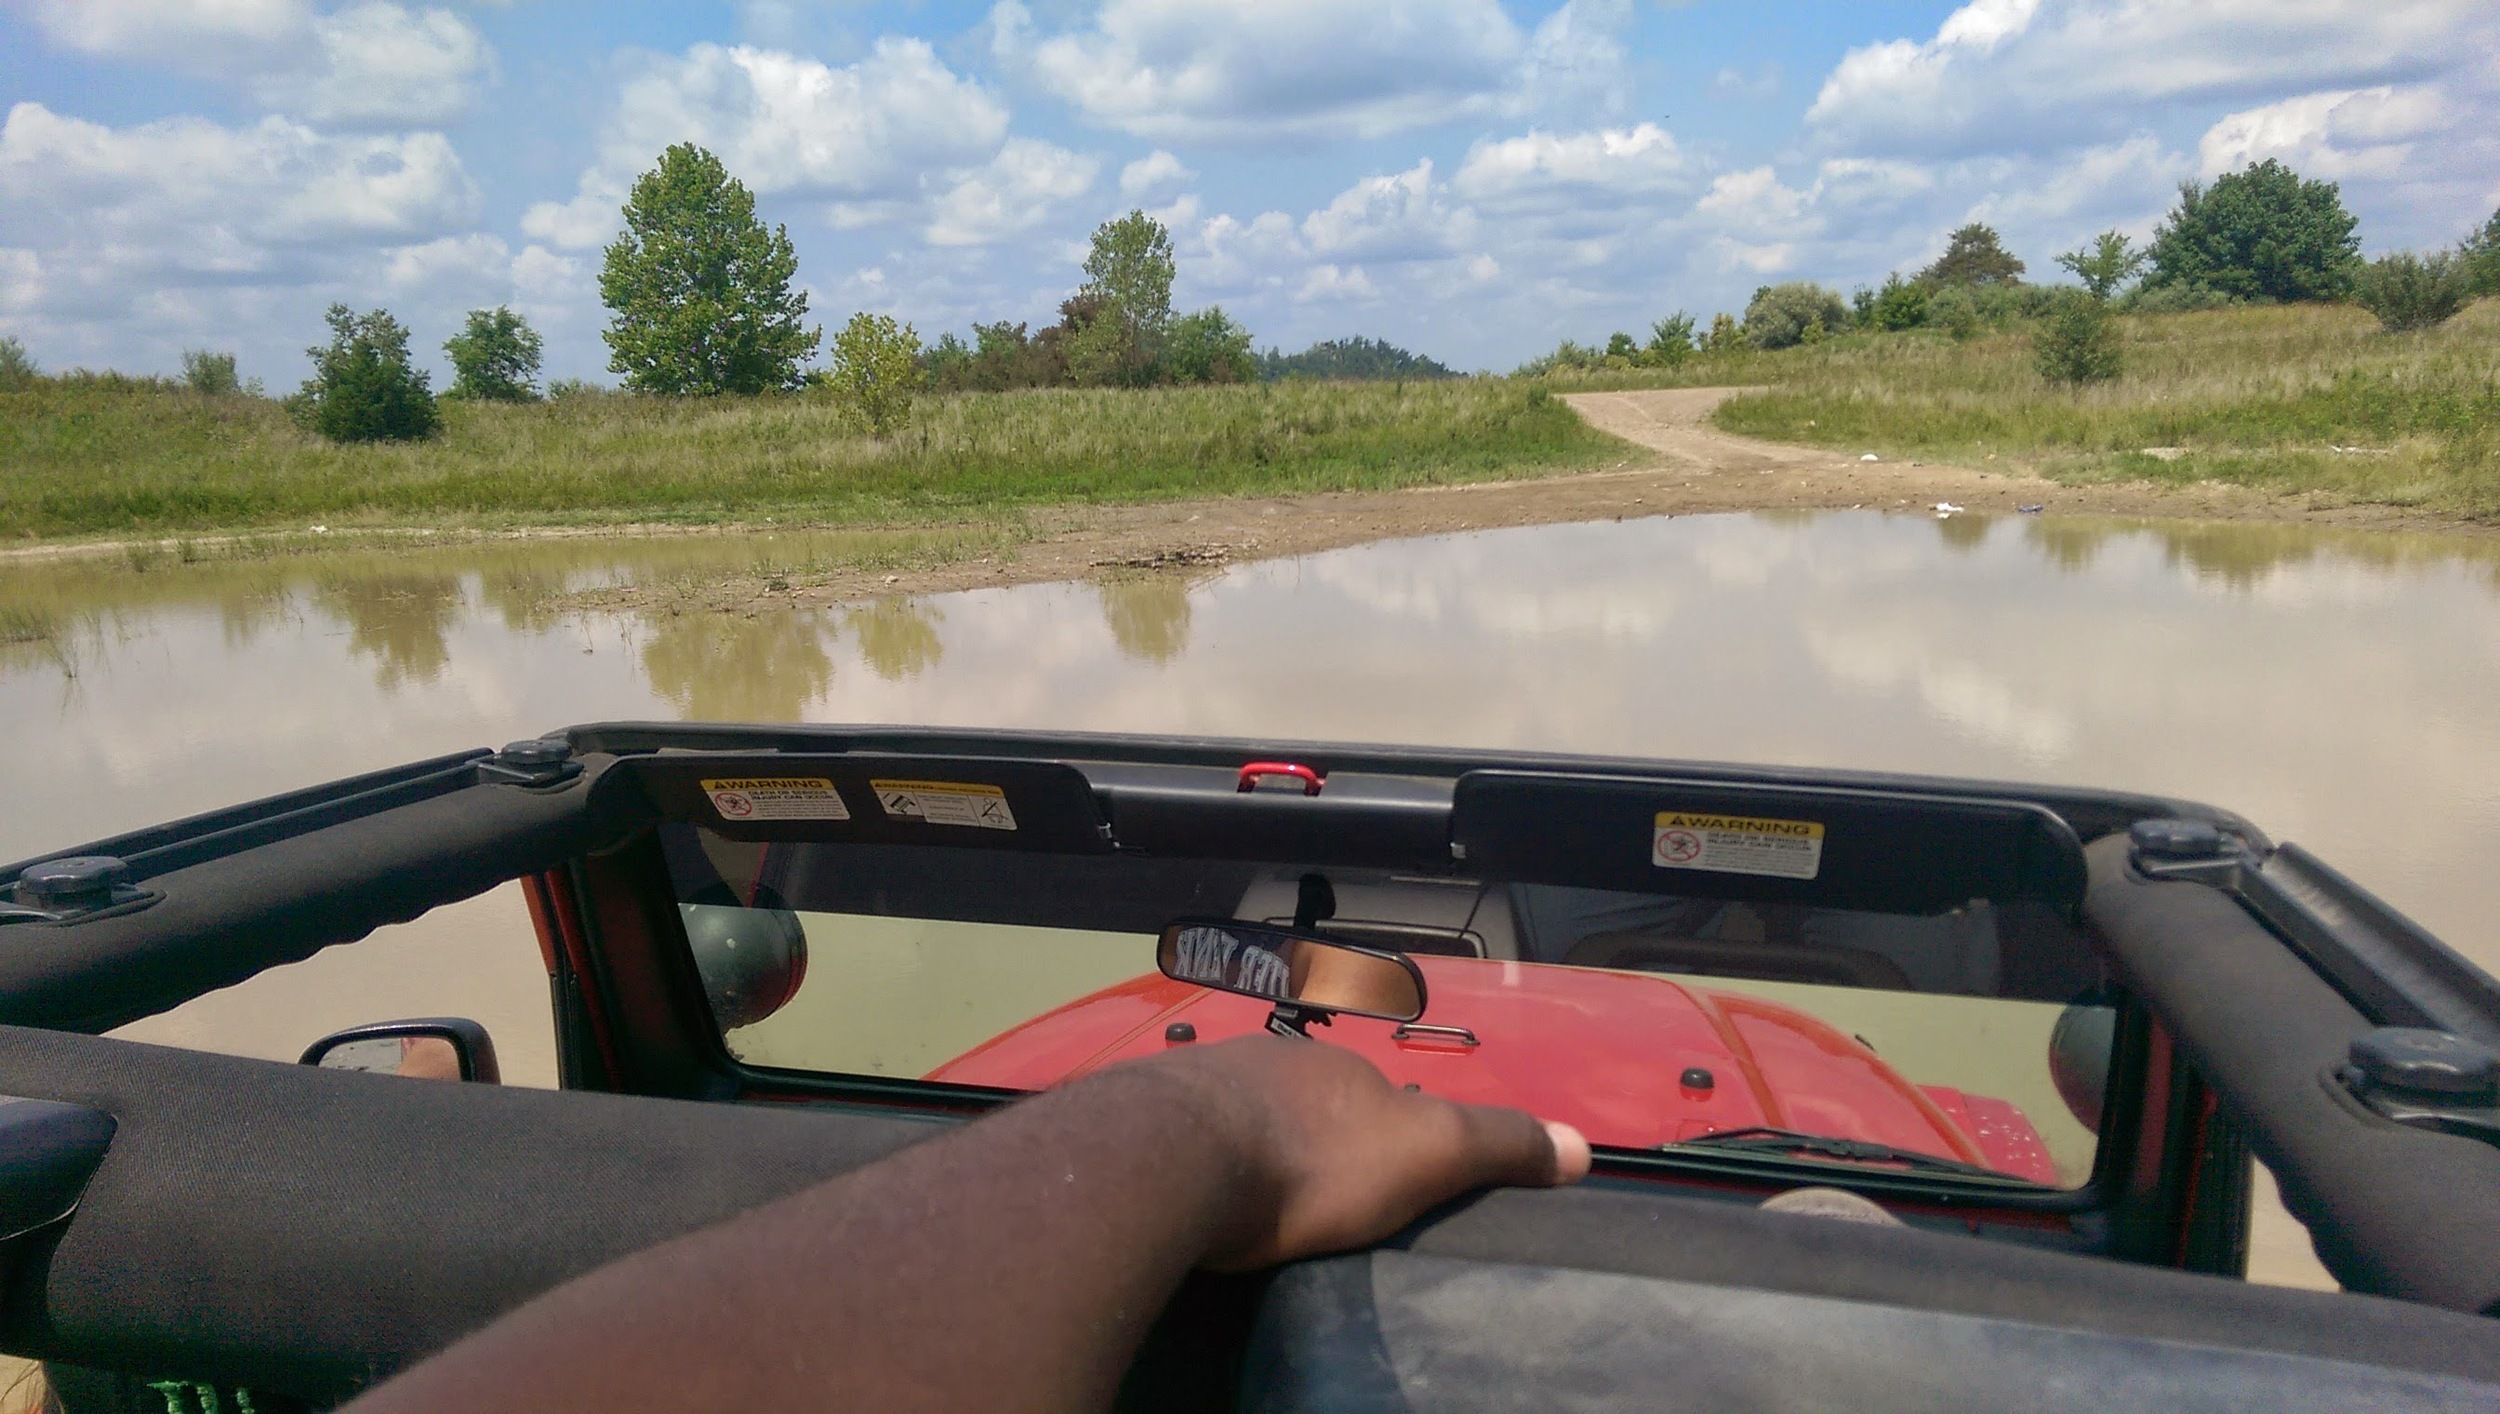 Muddin' on reclaimed mine land in the Big Creek section of Hazard, KY Photo by: Gerry Seavo